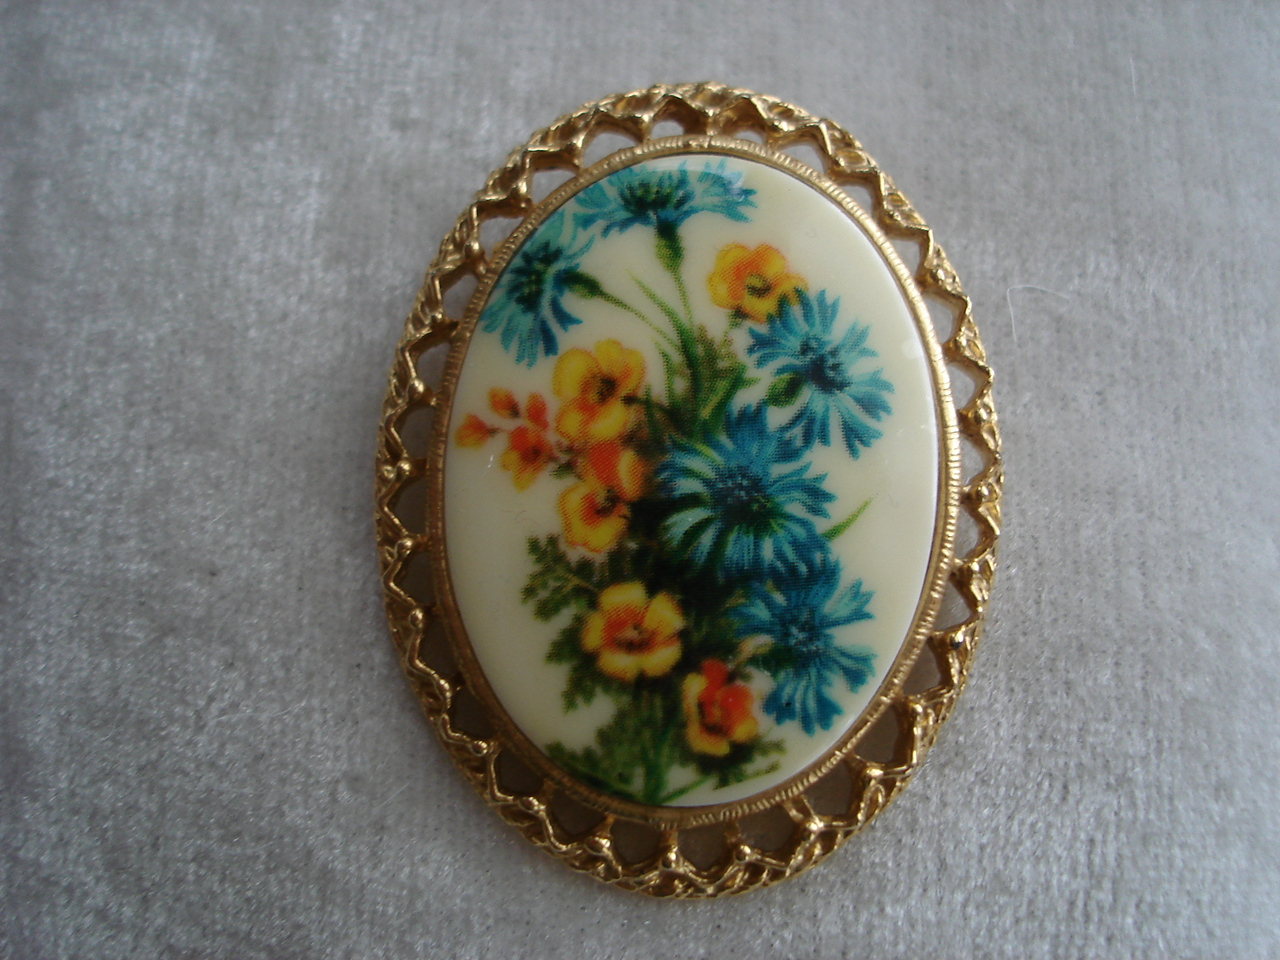 Goldtone Ornate Framed Porcelain Cameo With Painted Flowers